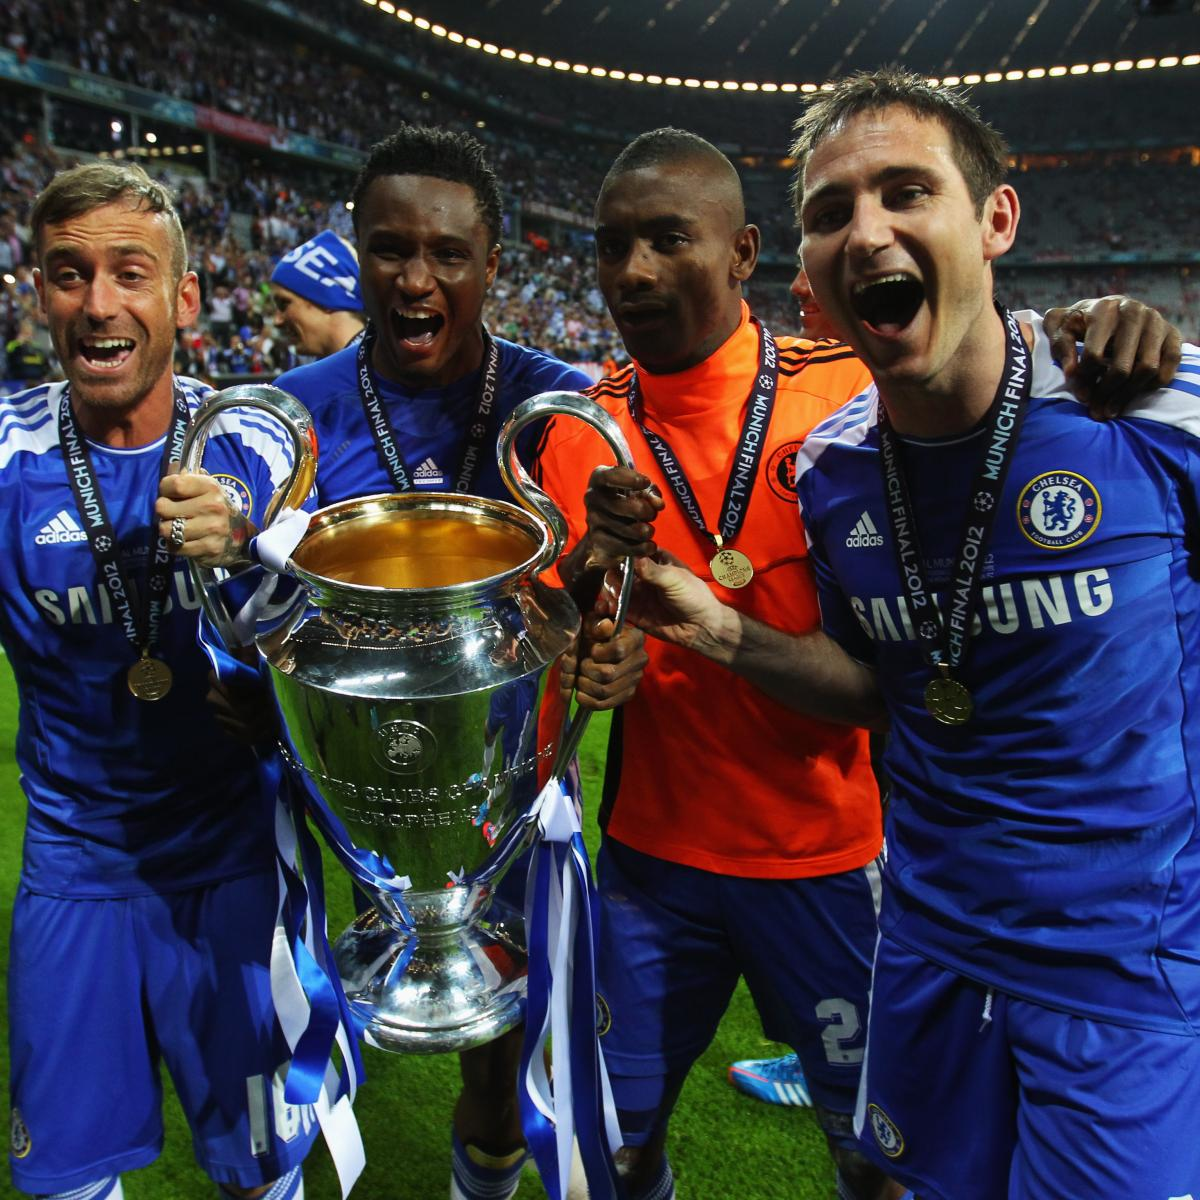 Champions League Final 2012: Bayern Munich Vs. Chelsea: Player Ratings For Blues In